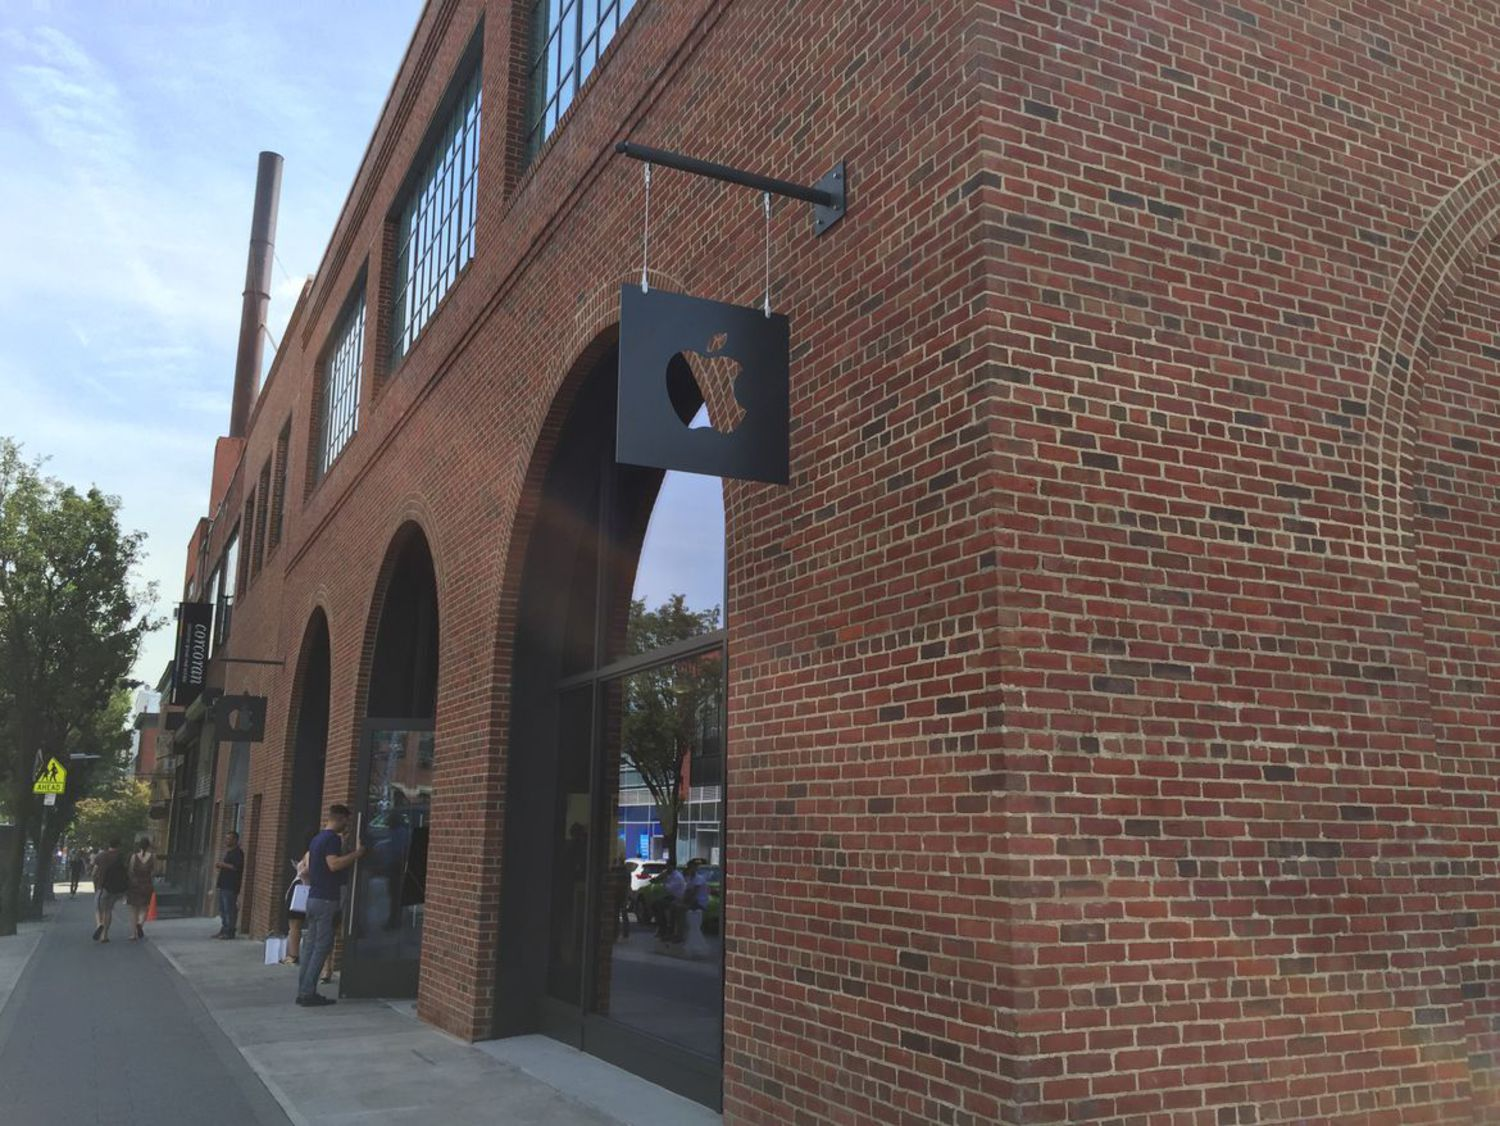 The first Brooklyn Apple Store is located in the neighborhood of Williamsburg.